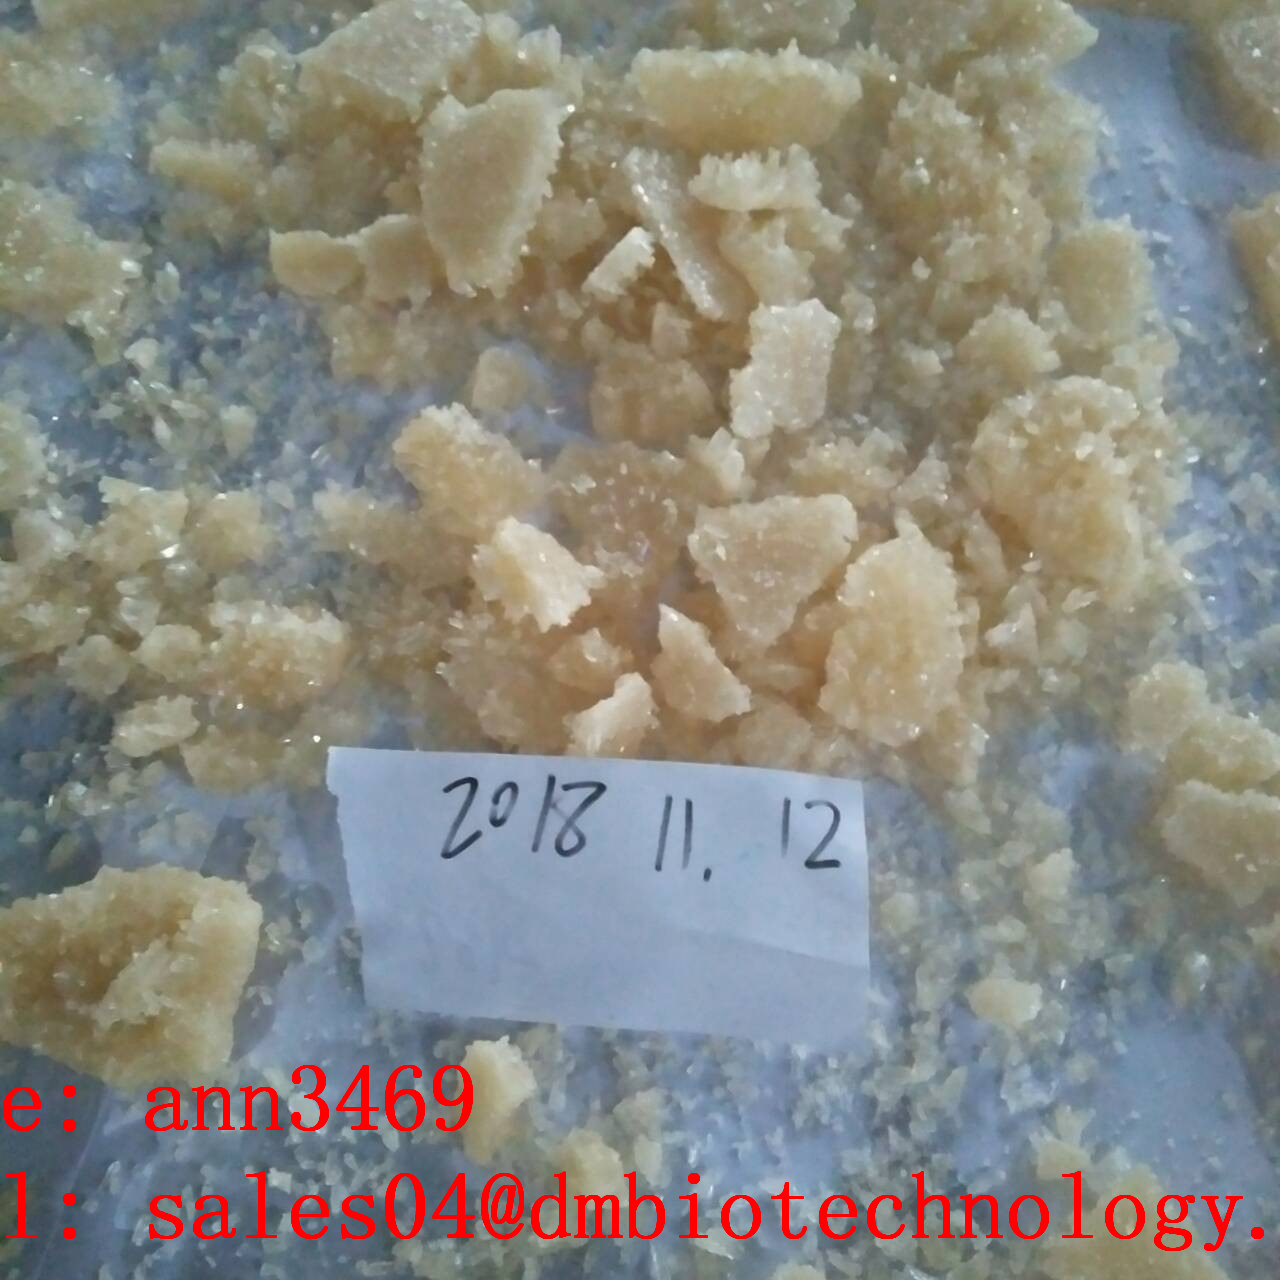 99.7% Purity BMDP bmdp Research Chemicals Crystal skype ann3469 sales04